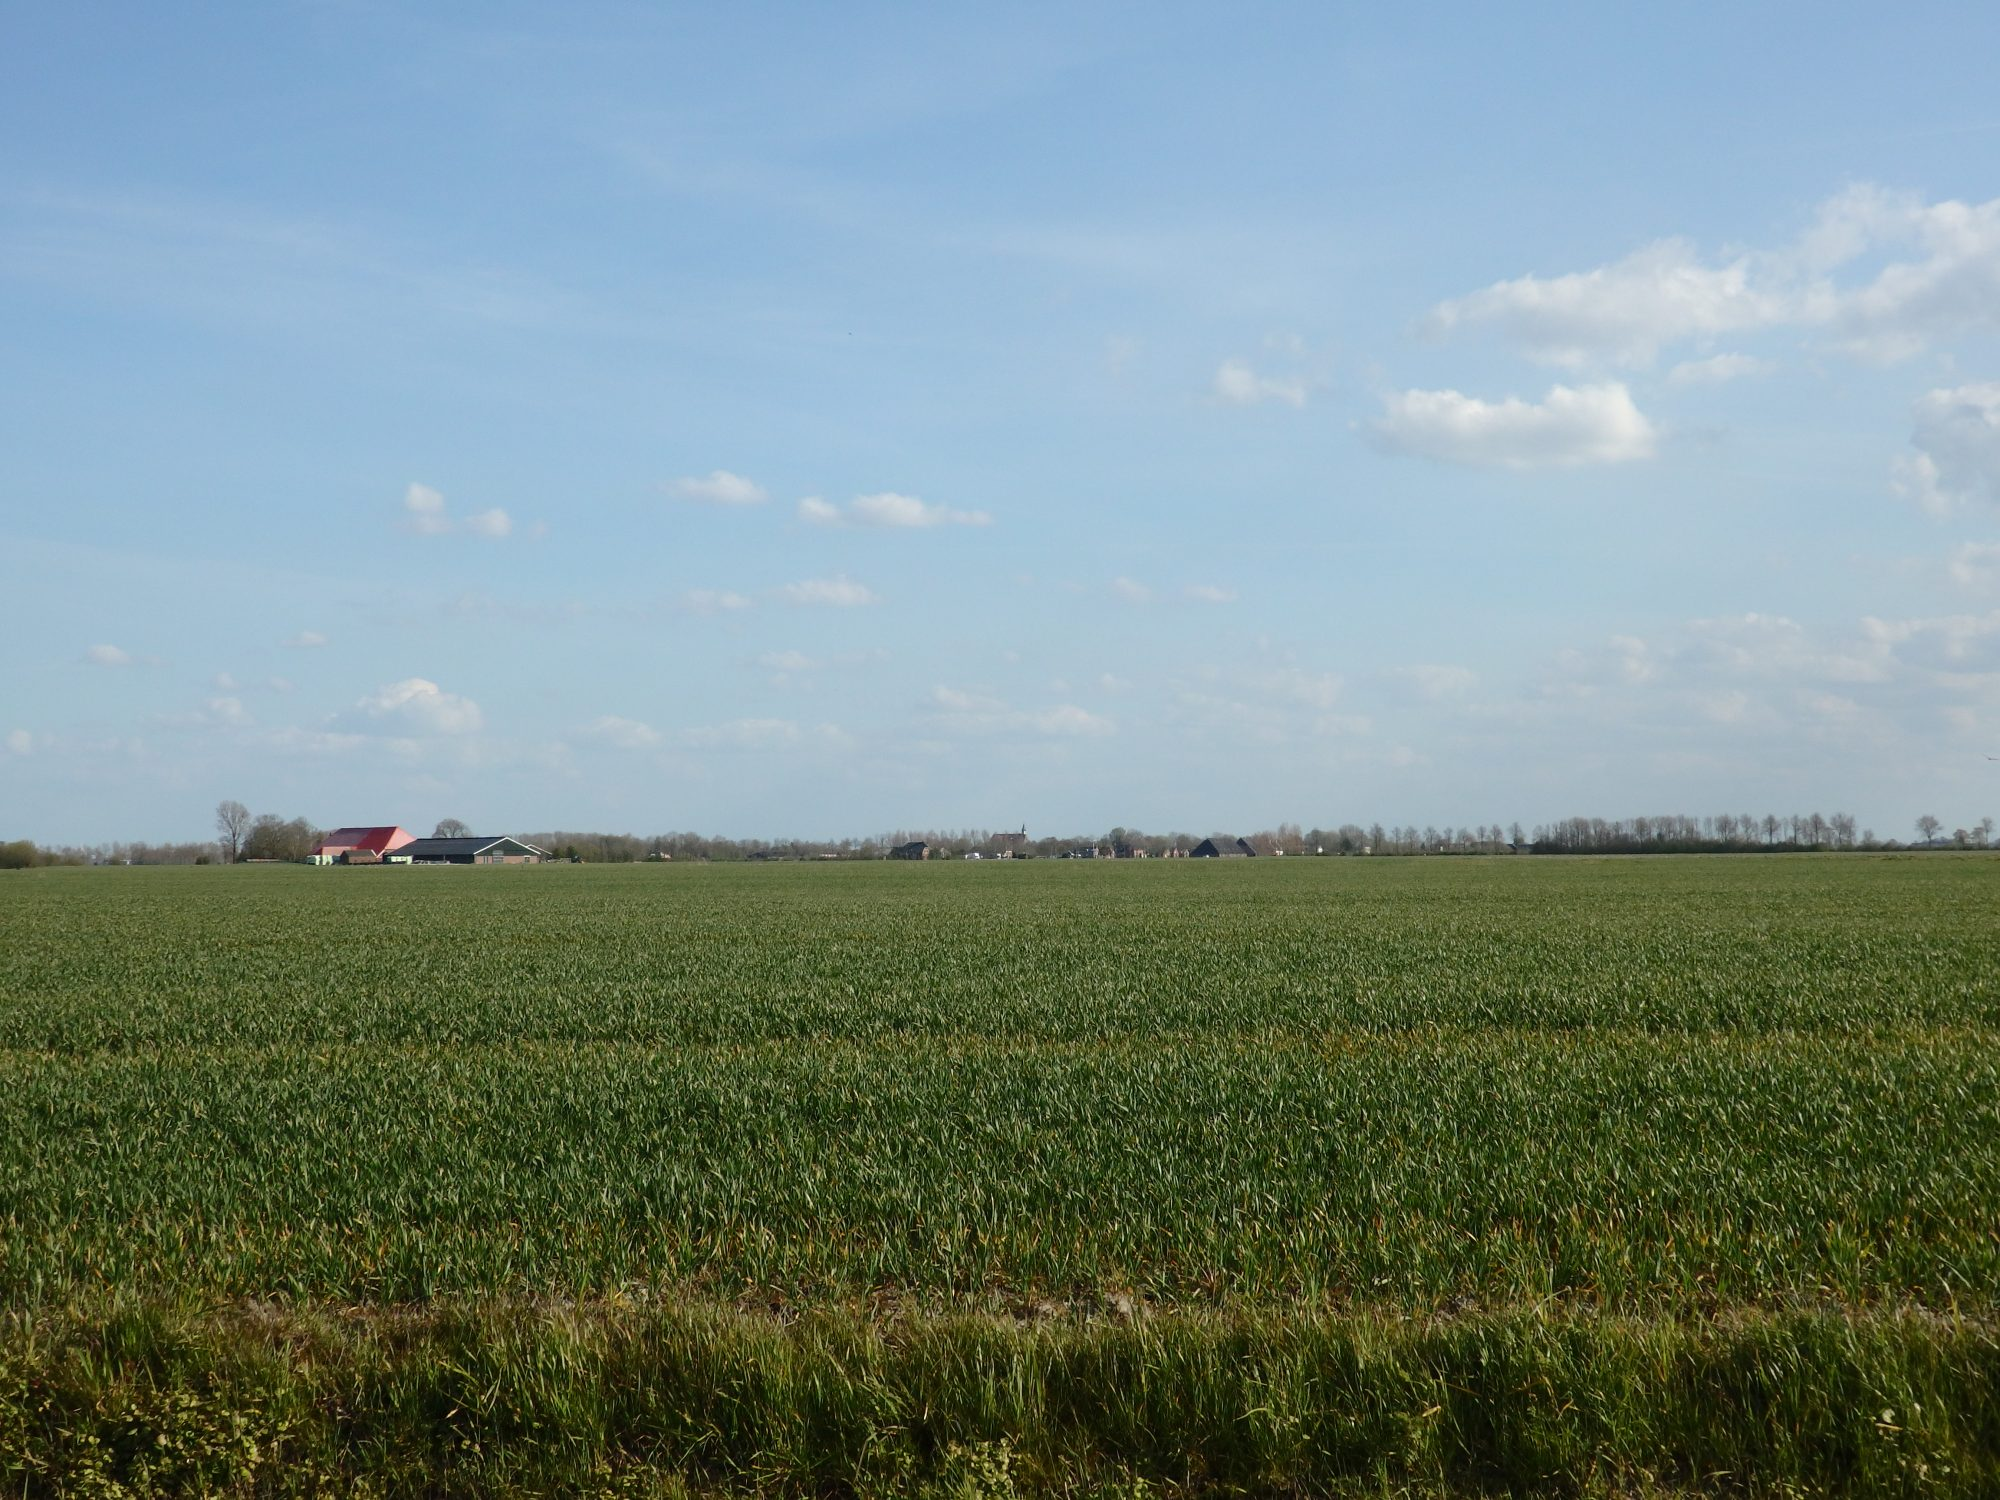 Big sky, flat land: typical Groningen province scenery